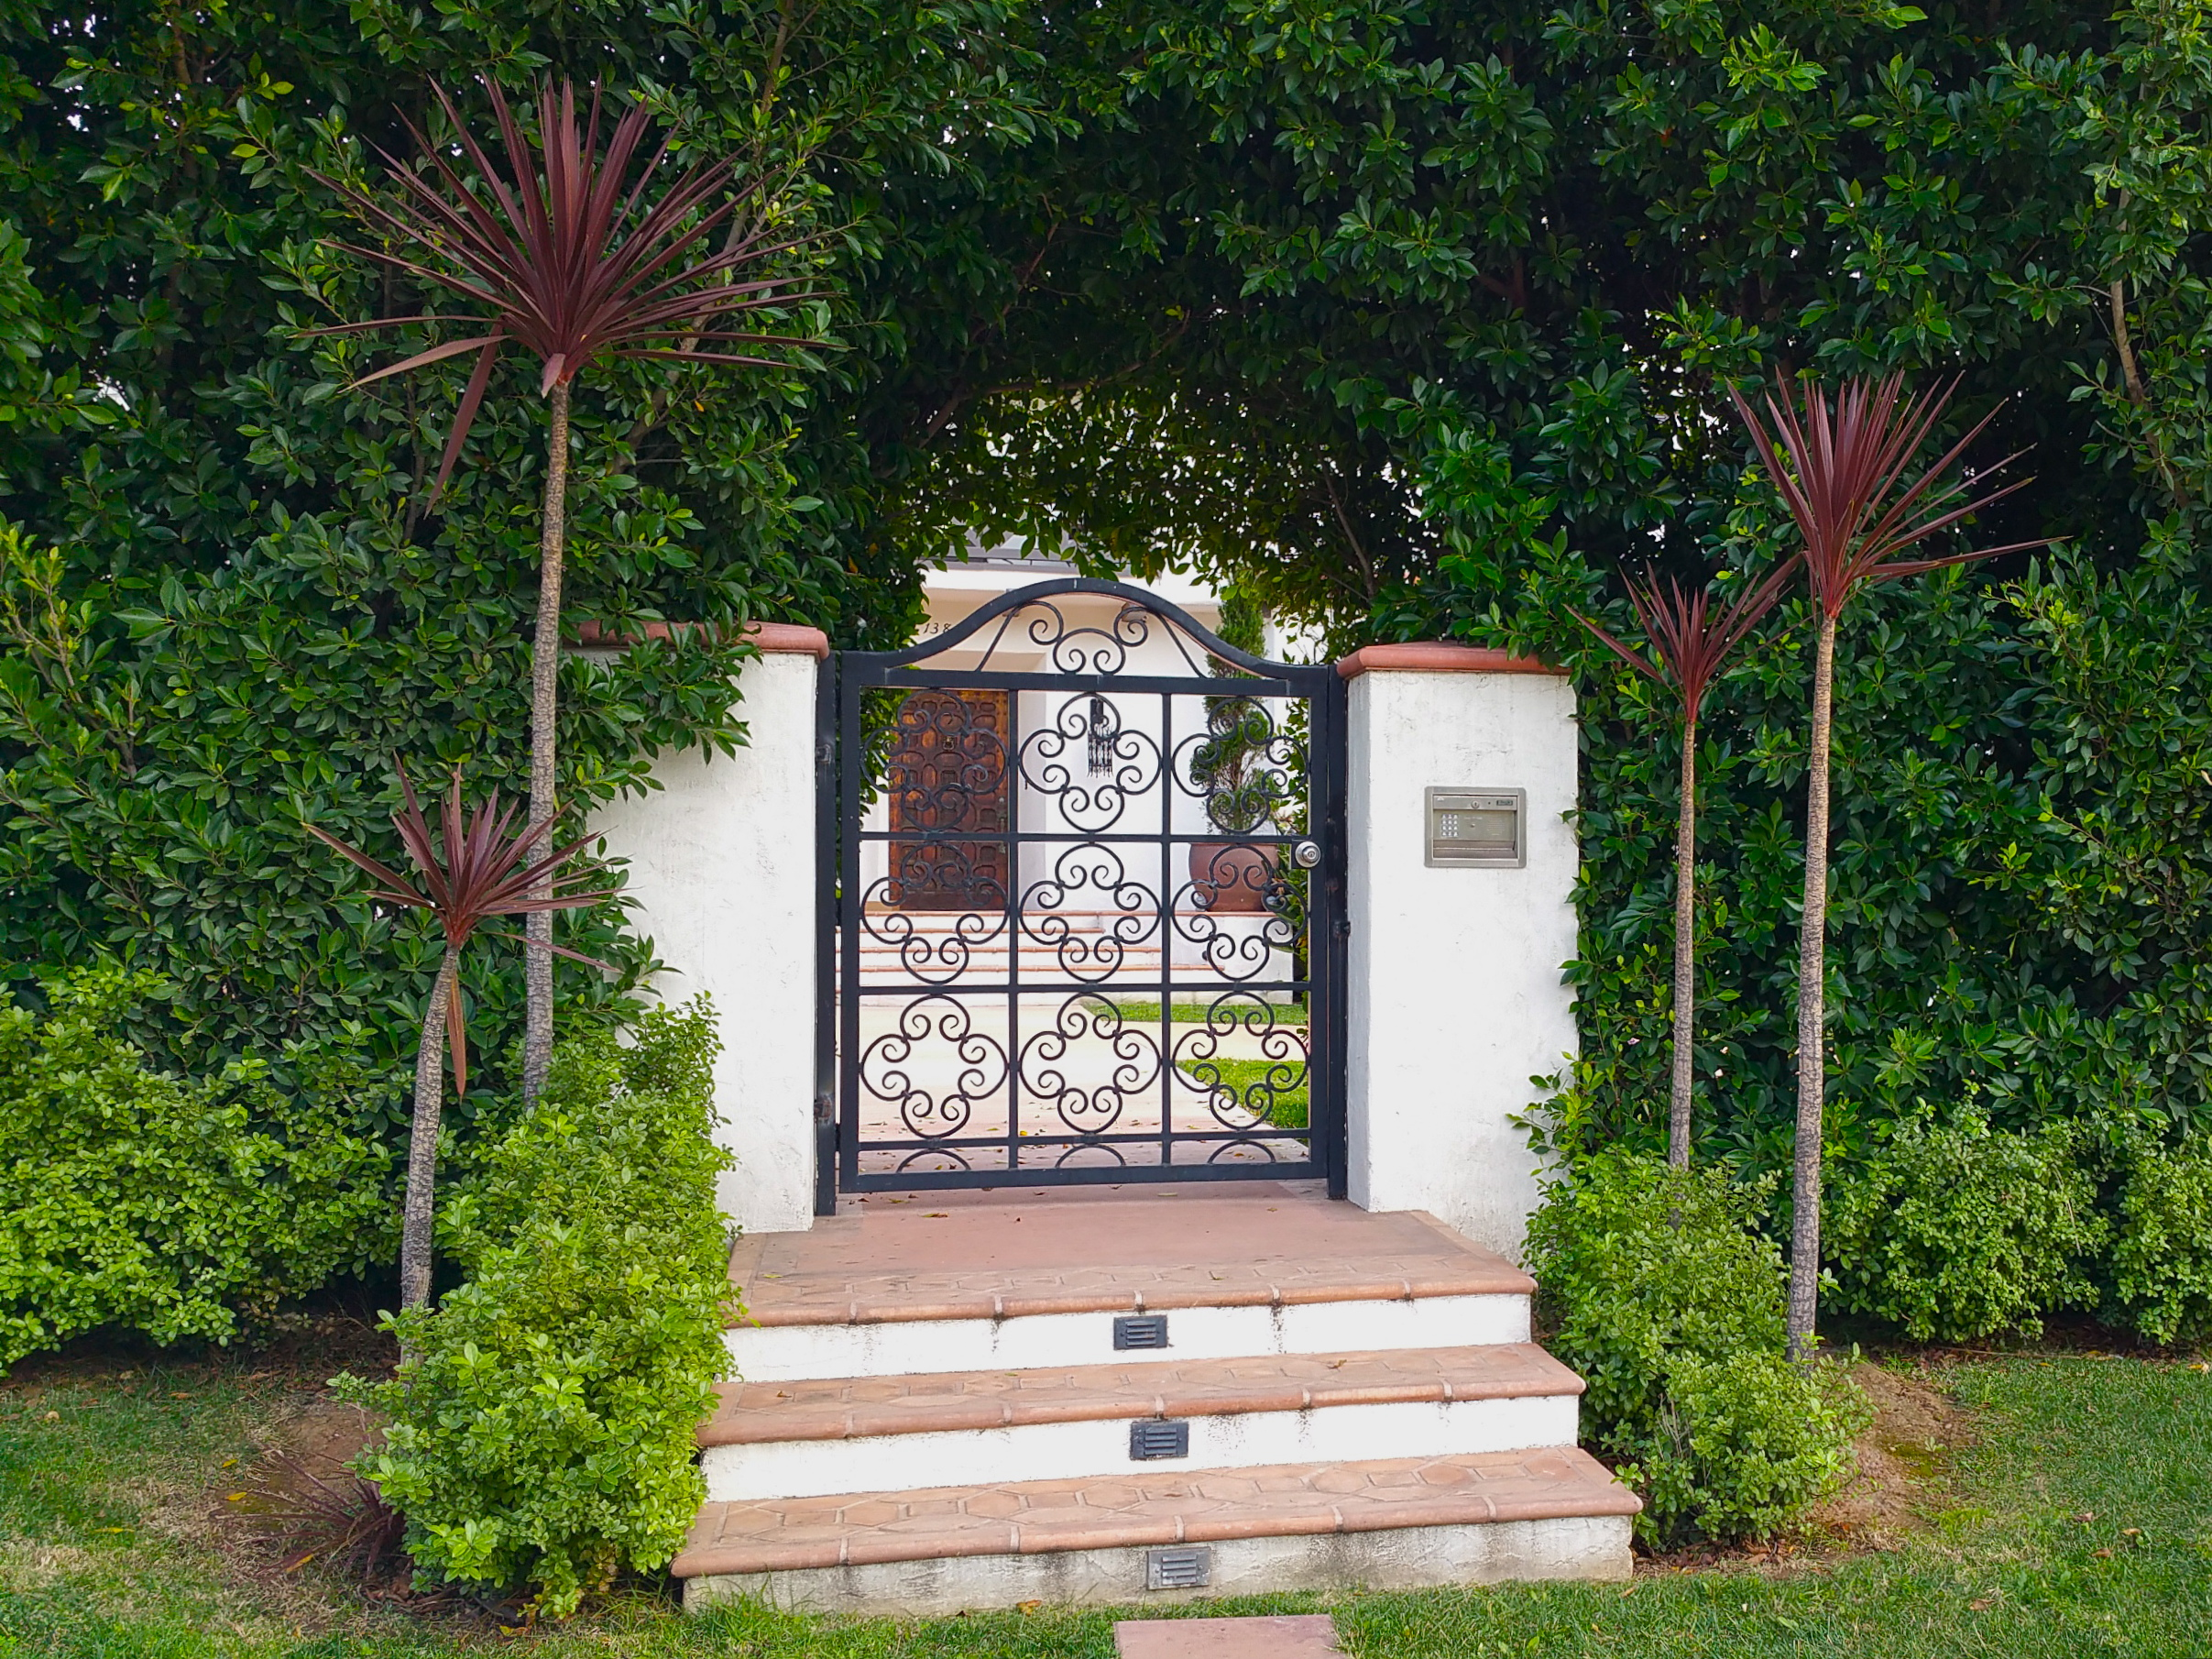 SUNSET - A stately Spanish revival house on a busy street needed a sense of privacy and grandeure to compliment this two story beauty. We planted tall hedges around a custom iron work entrance, added driveway gates, a semicircular driveway with a fountain and appropriate drought tolerant planting to compliment its historic beauty.